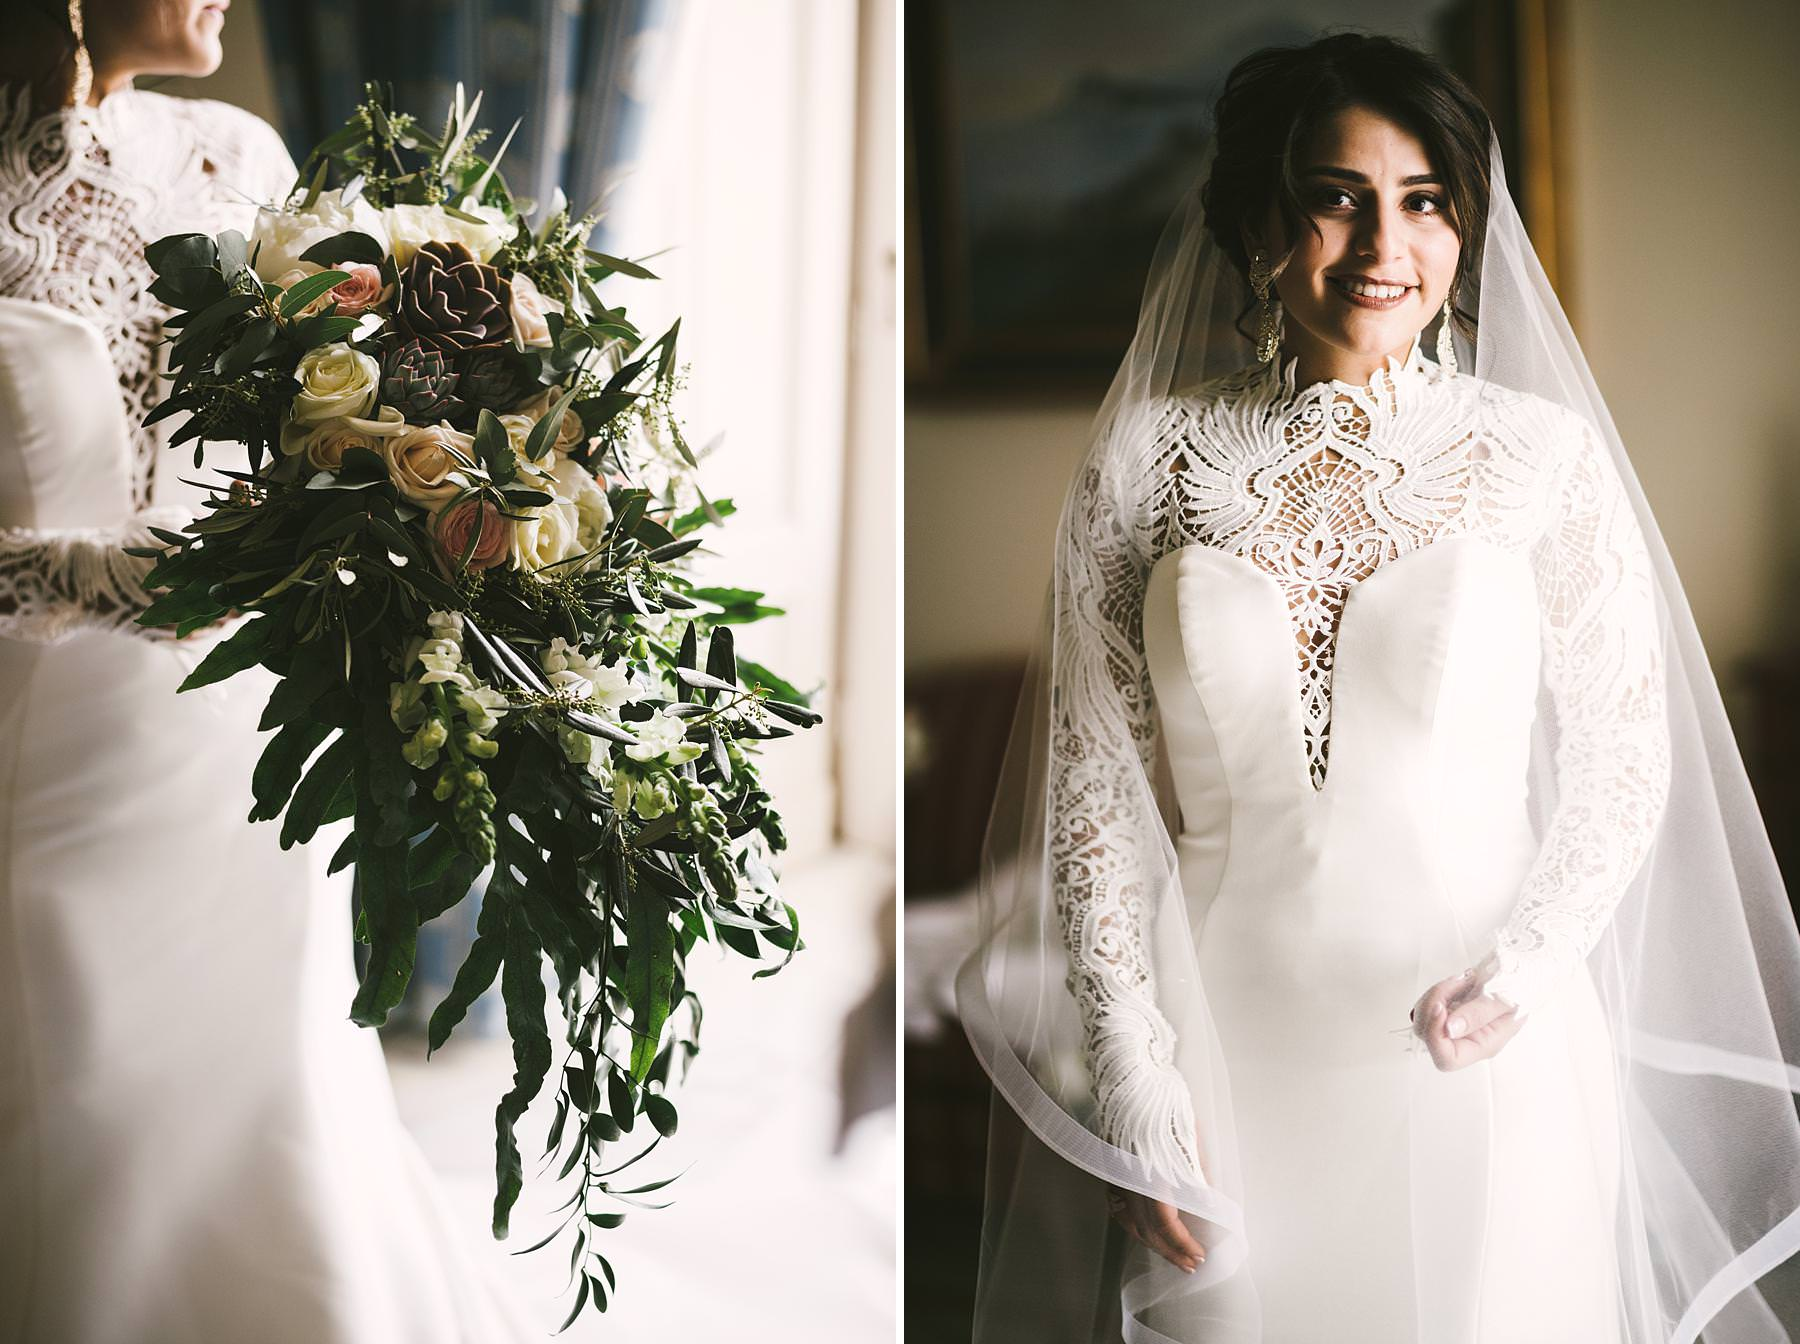 Elegant and beautiful bride Steffany in her Bellissima Bridal Designs wedding gown